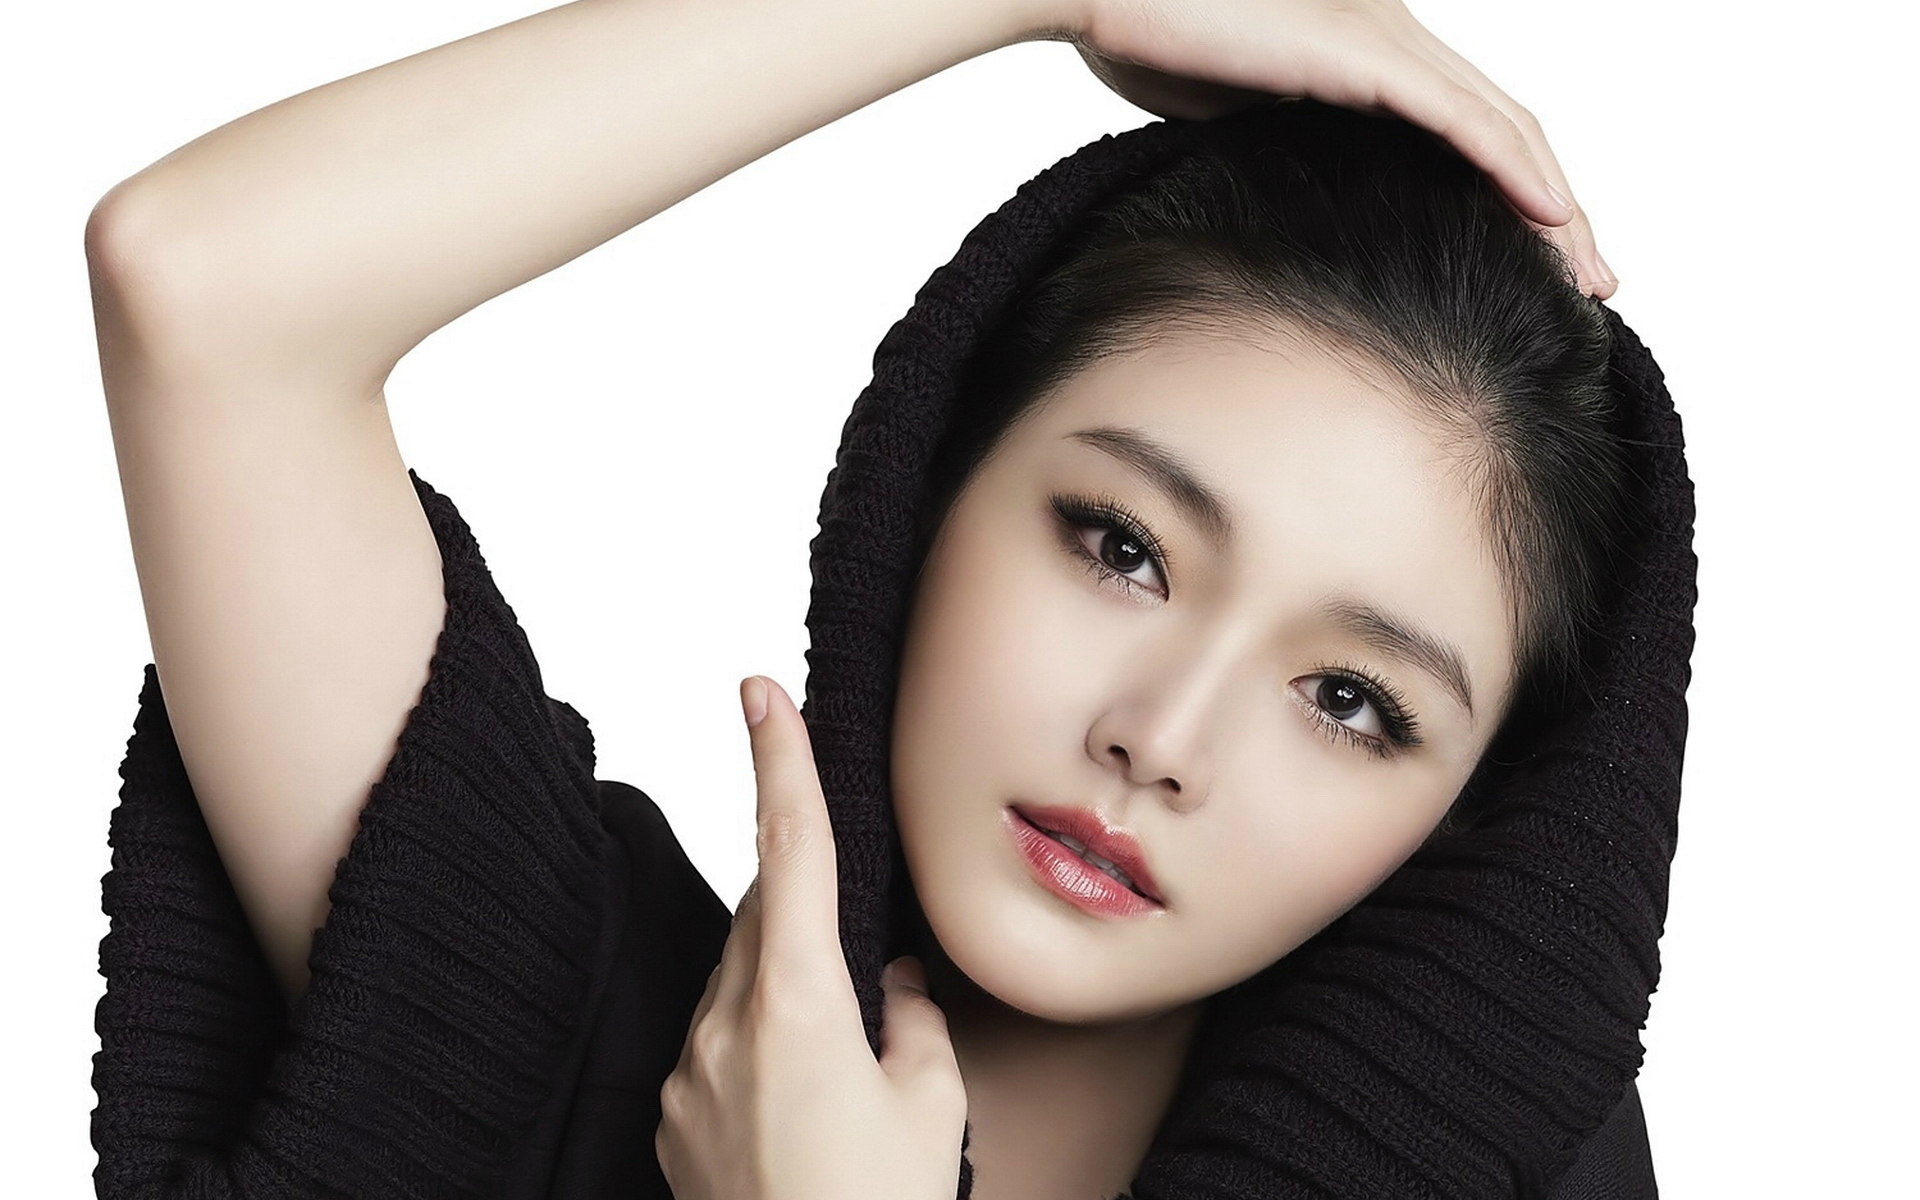 19 Barbie Hsu HD Wallpapers | Backgrounds - Wallpaper Abyss